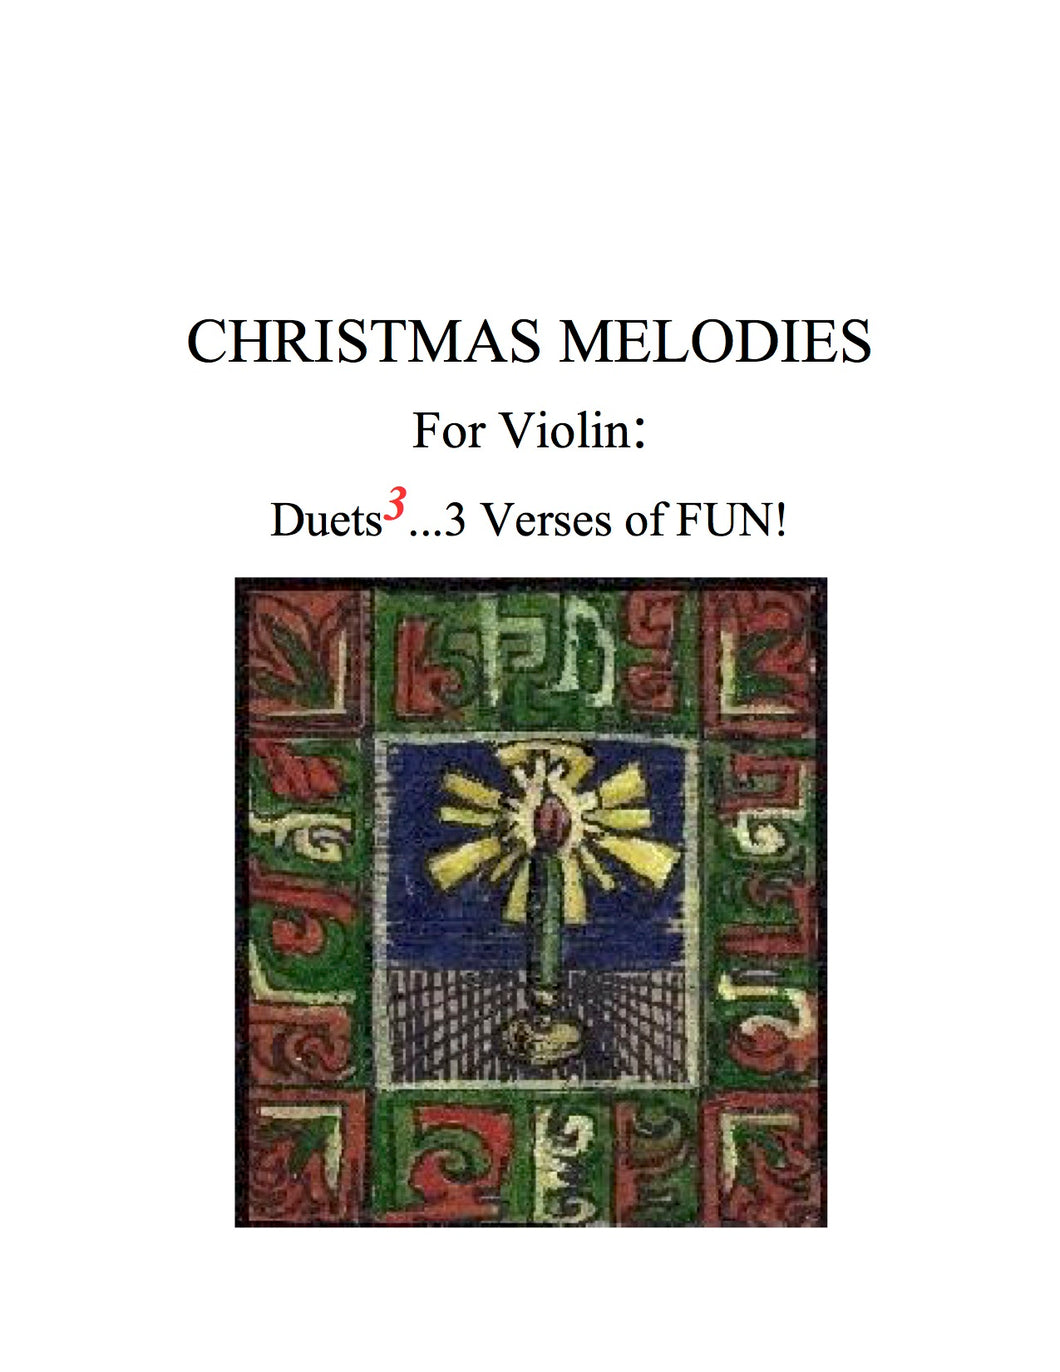 031 - Christmas Melodies For Violin: (A) Duets to the 3rd power…3 Verses of FUN!